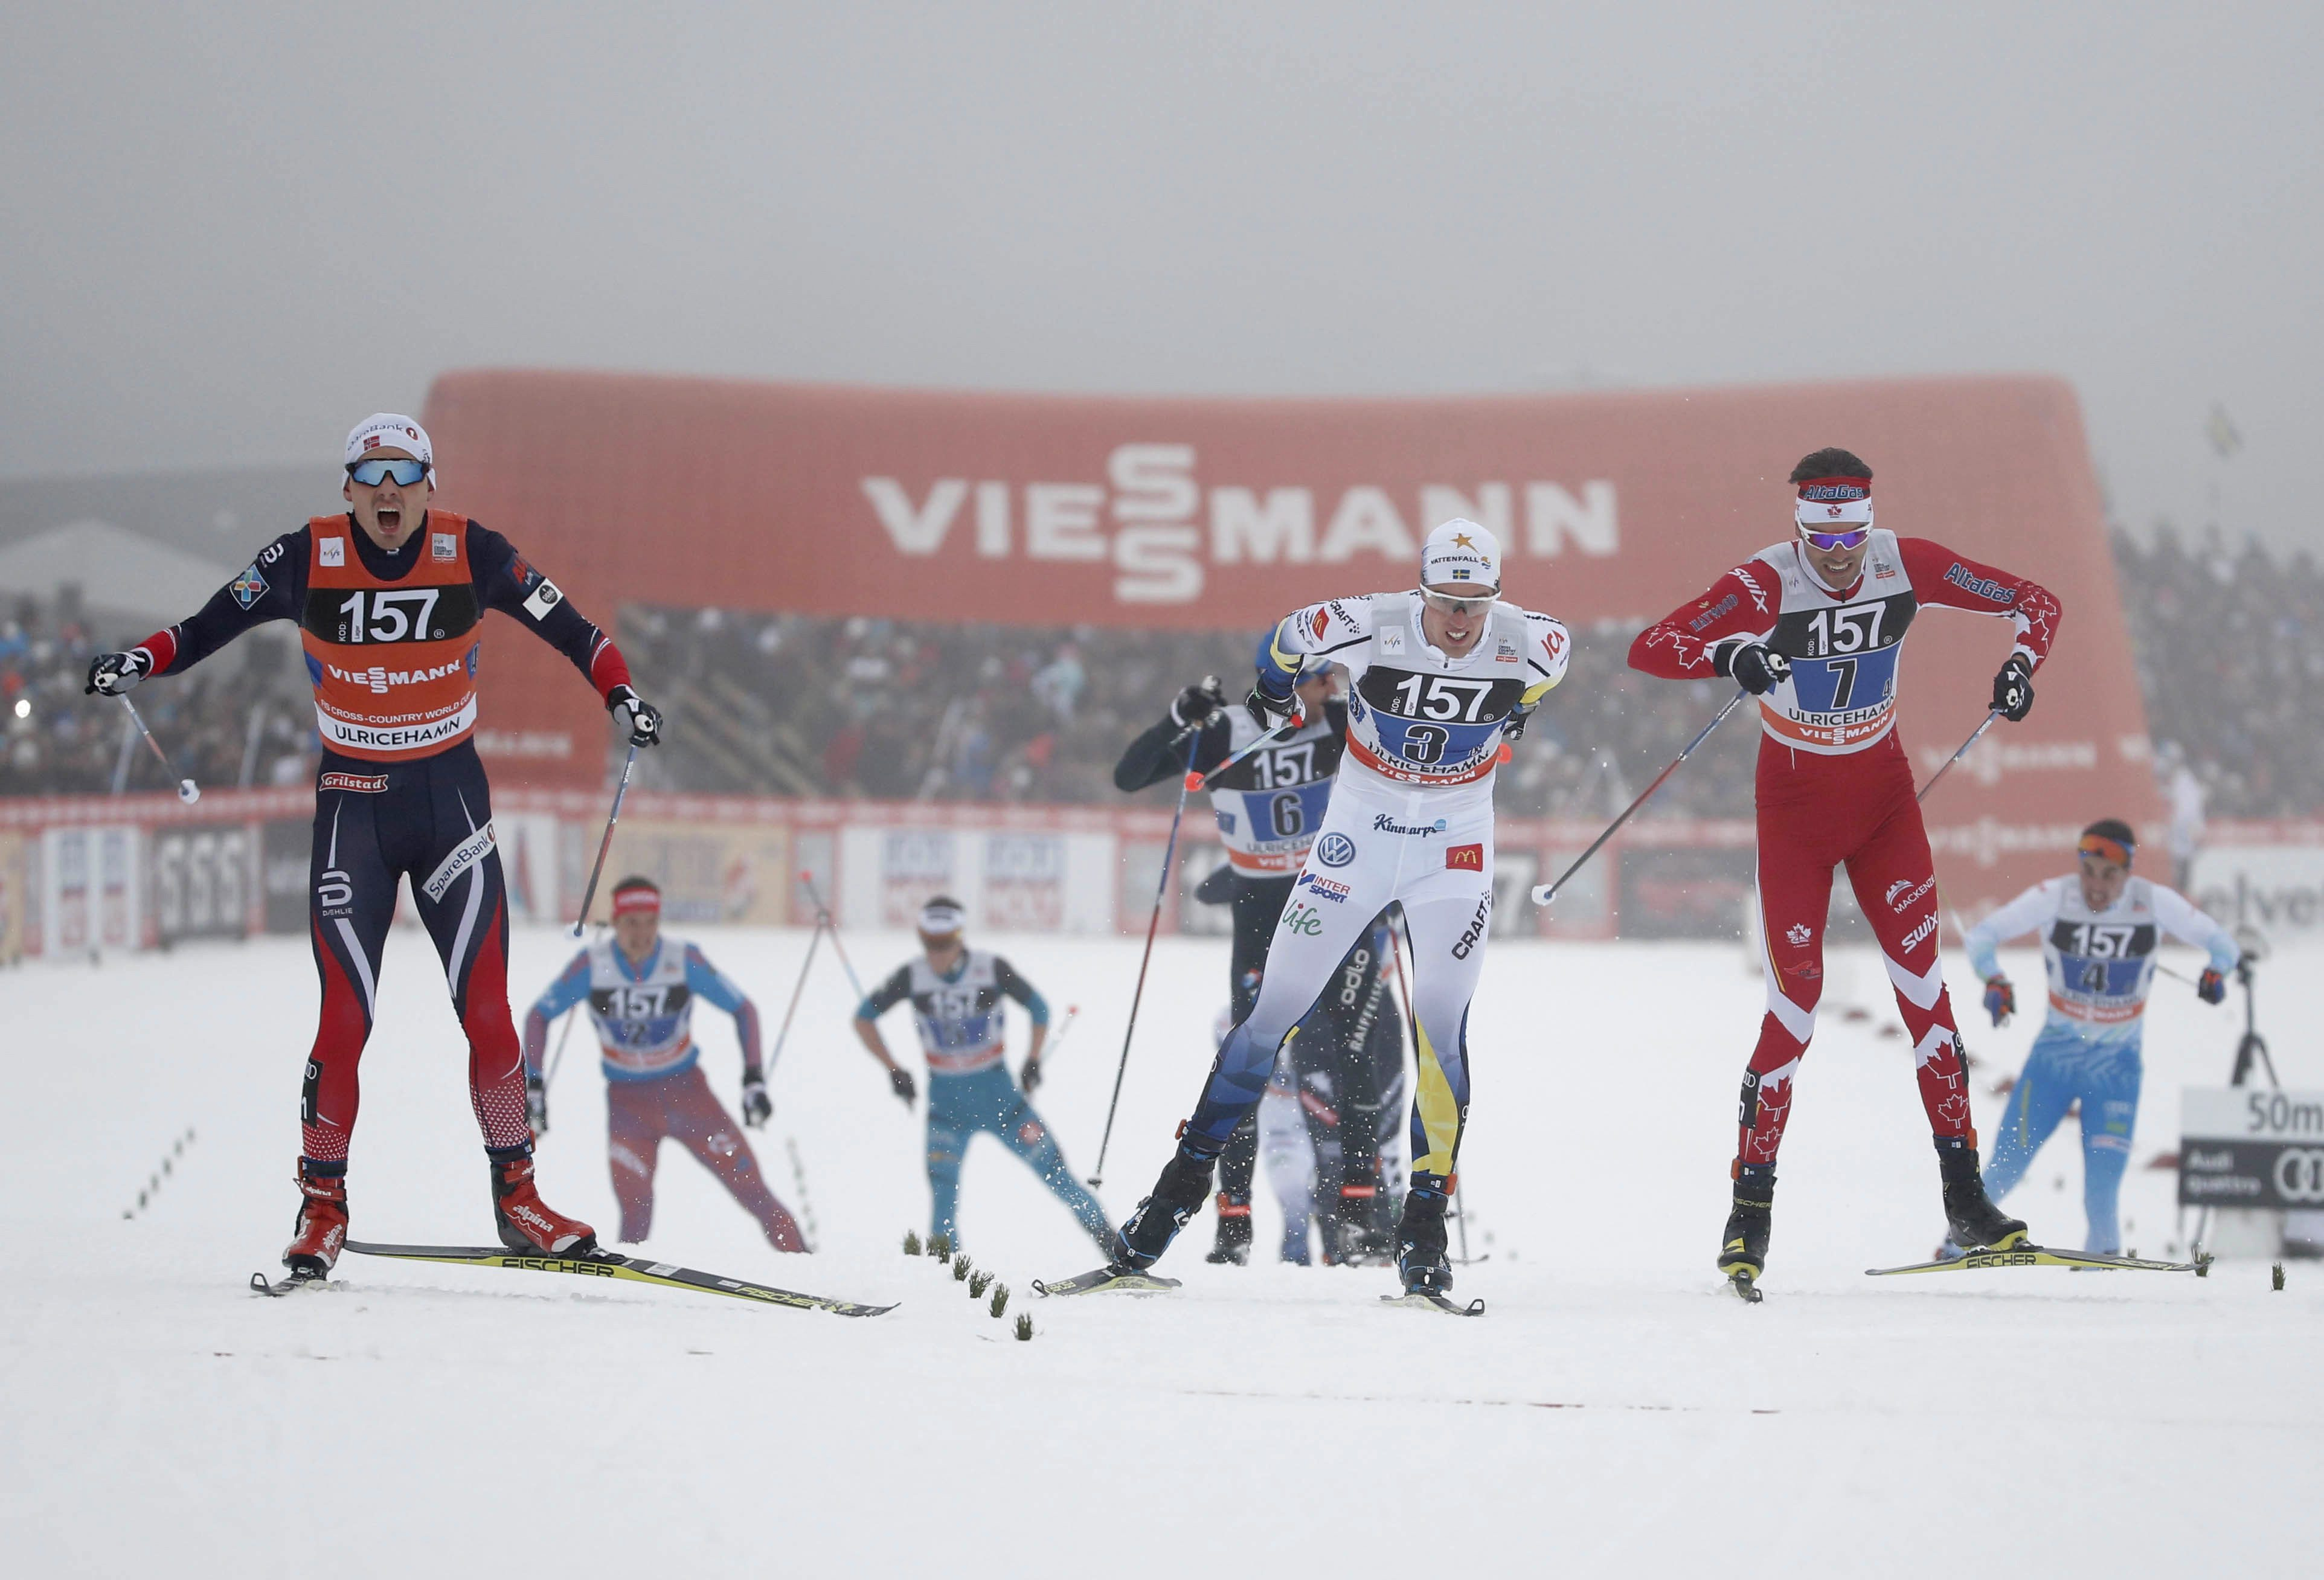 Norway's Finn Haagen Krogh, left, wins in front of Sweden's Calle Halfvarsson, centre, and Len Valjas of Canada, right, during men's relay 4x7.5 km competition at the FIS Cross Country skiing World Cup event in Ulricehamn, Sweden, Sunday Jan. 22, 2017. (Adam Ihse / TT via AP)